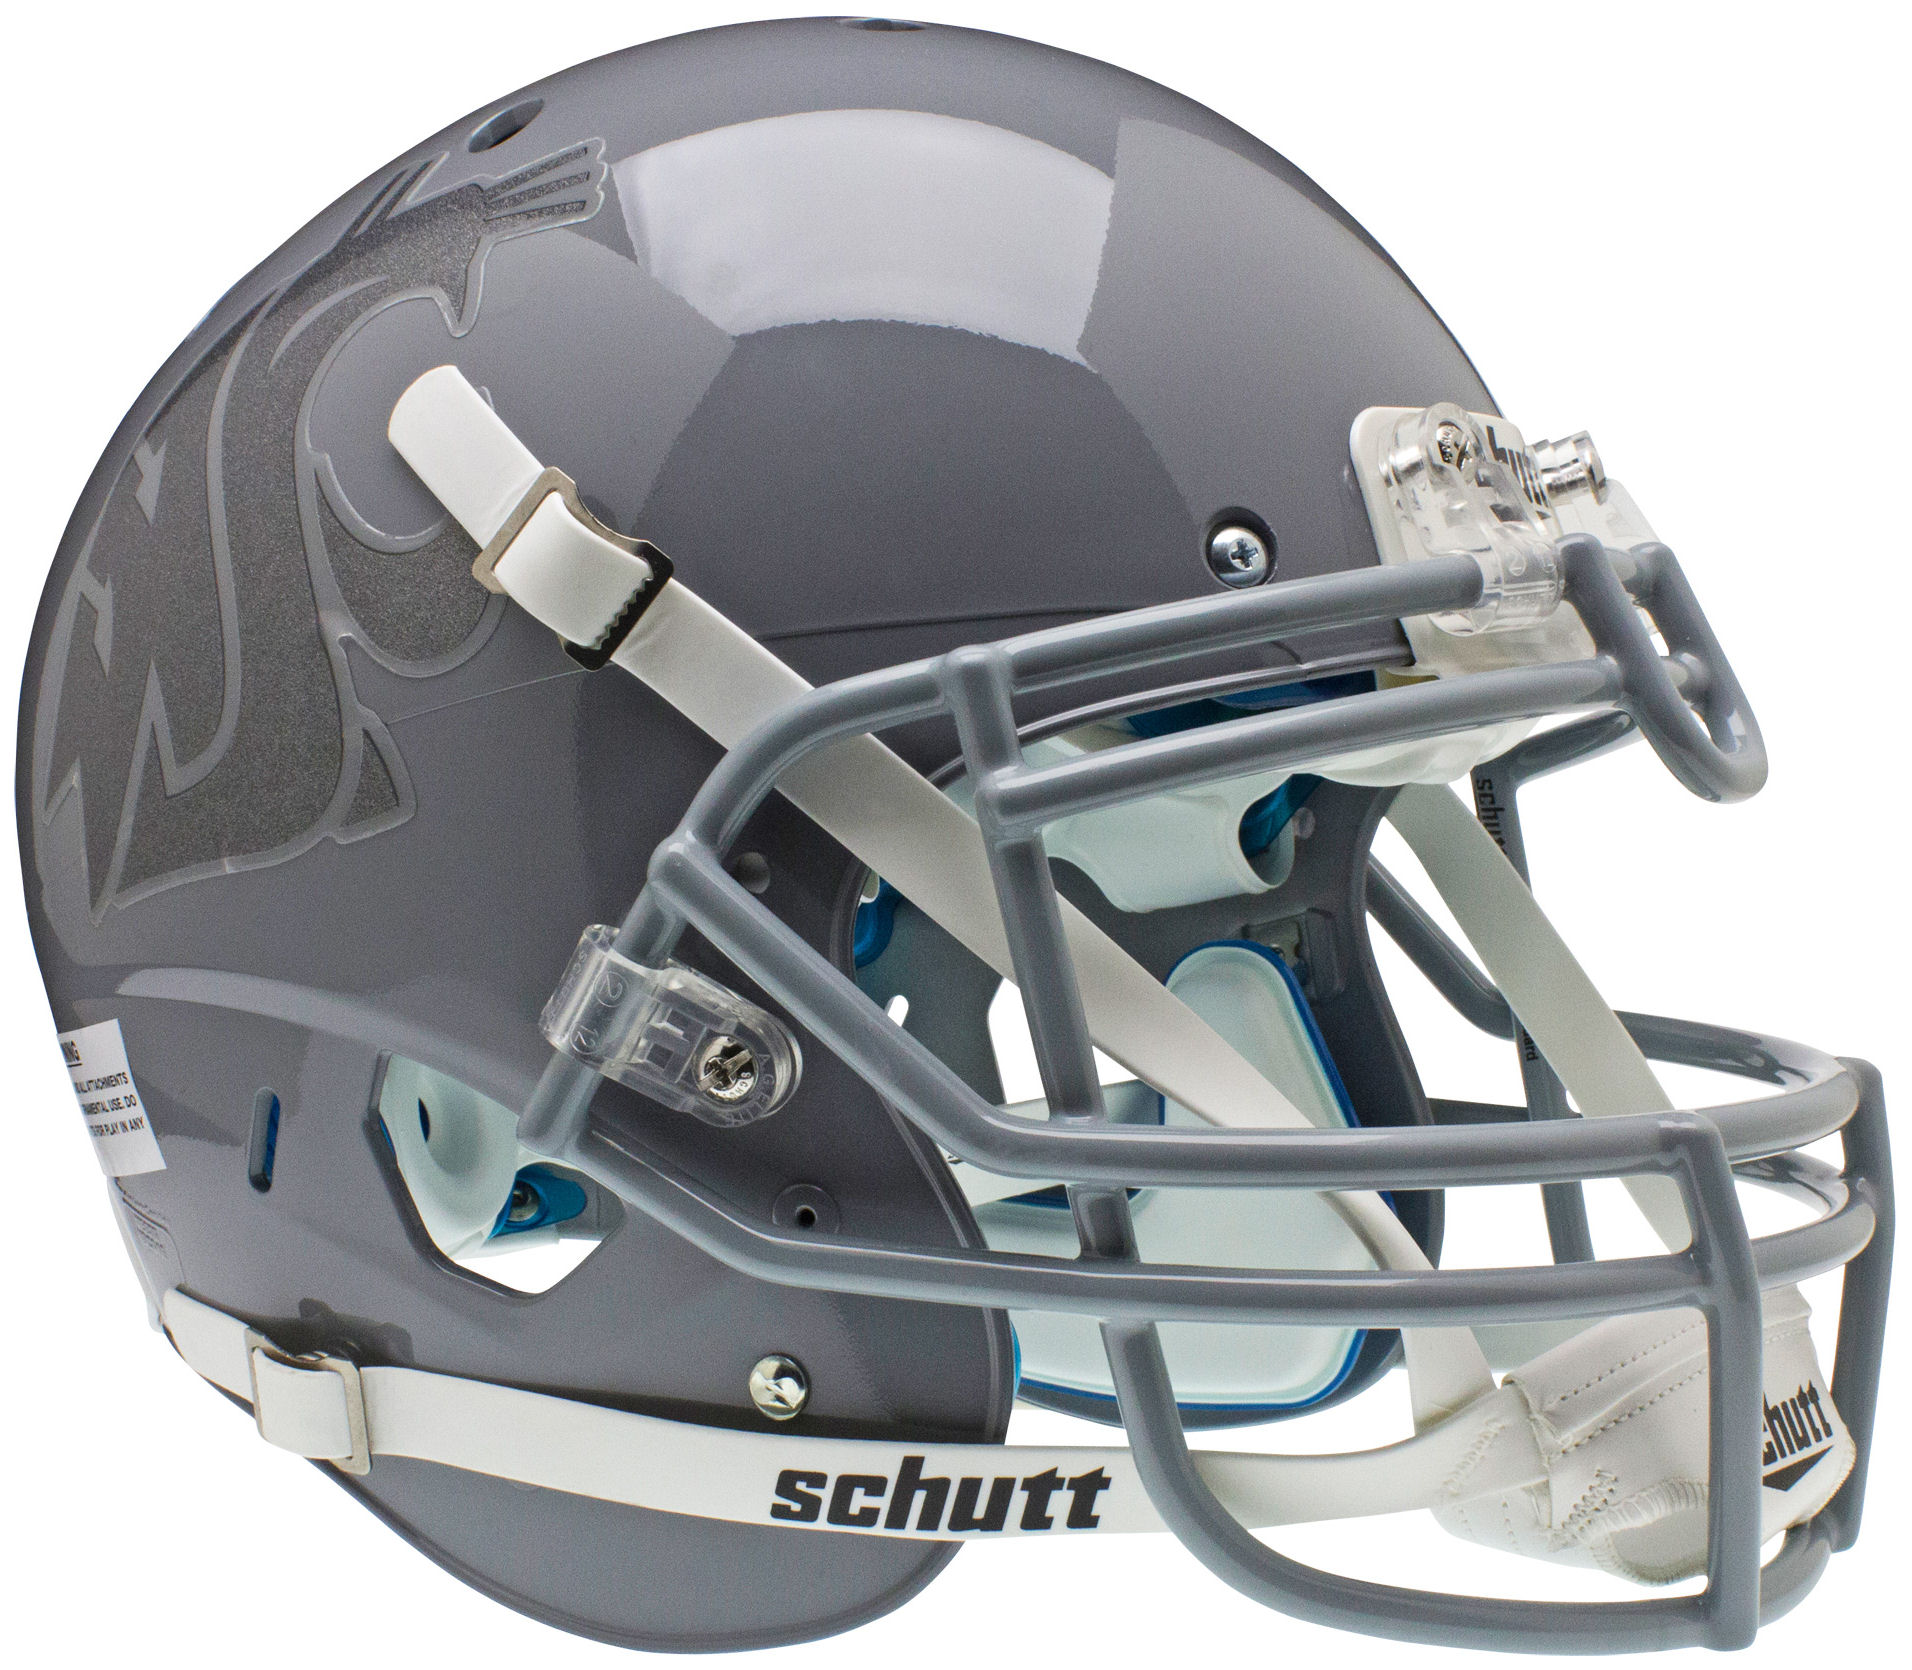 Washington State Cougars Authentic College XP Football Helmet Schutt <B>Gray/Gray</B>